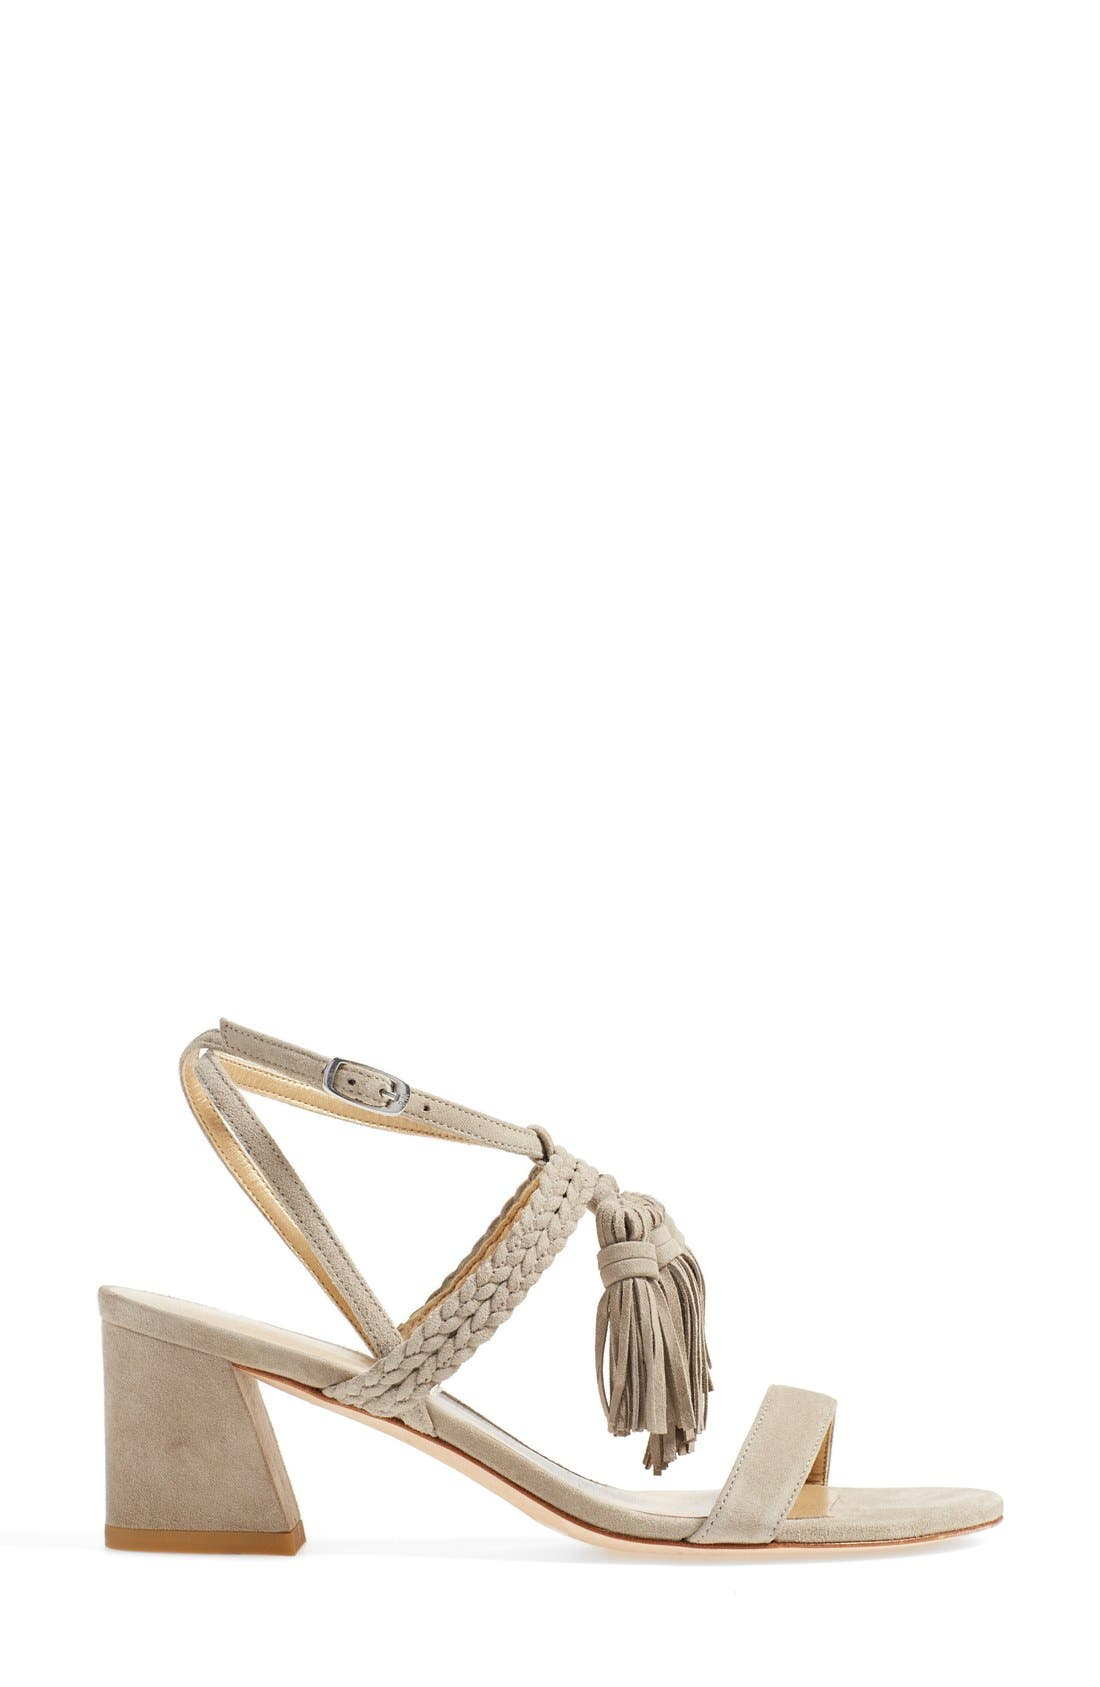 'Tasselmania' Strappy Sandal,                             Alternate thumbnail 5, color,